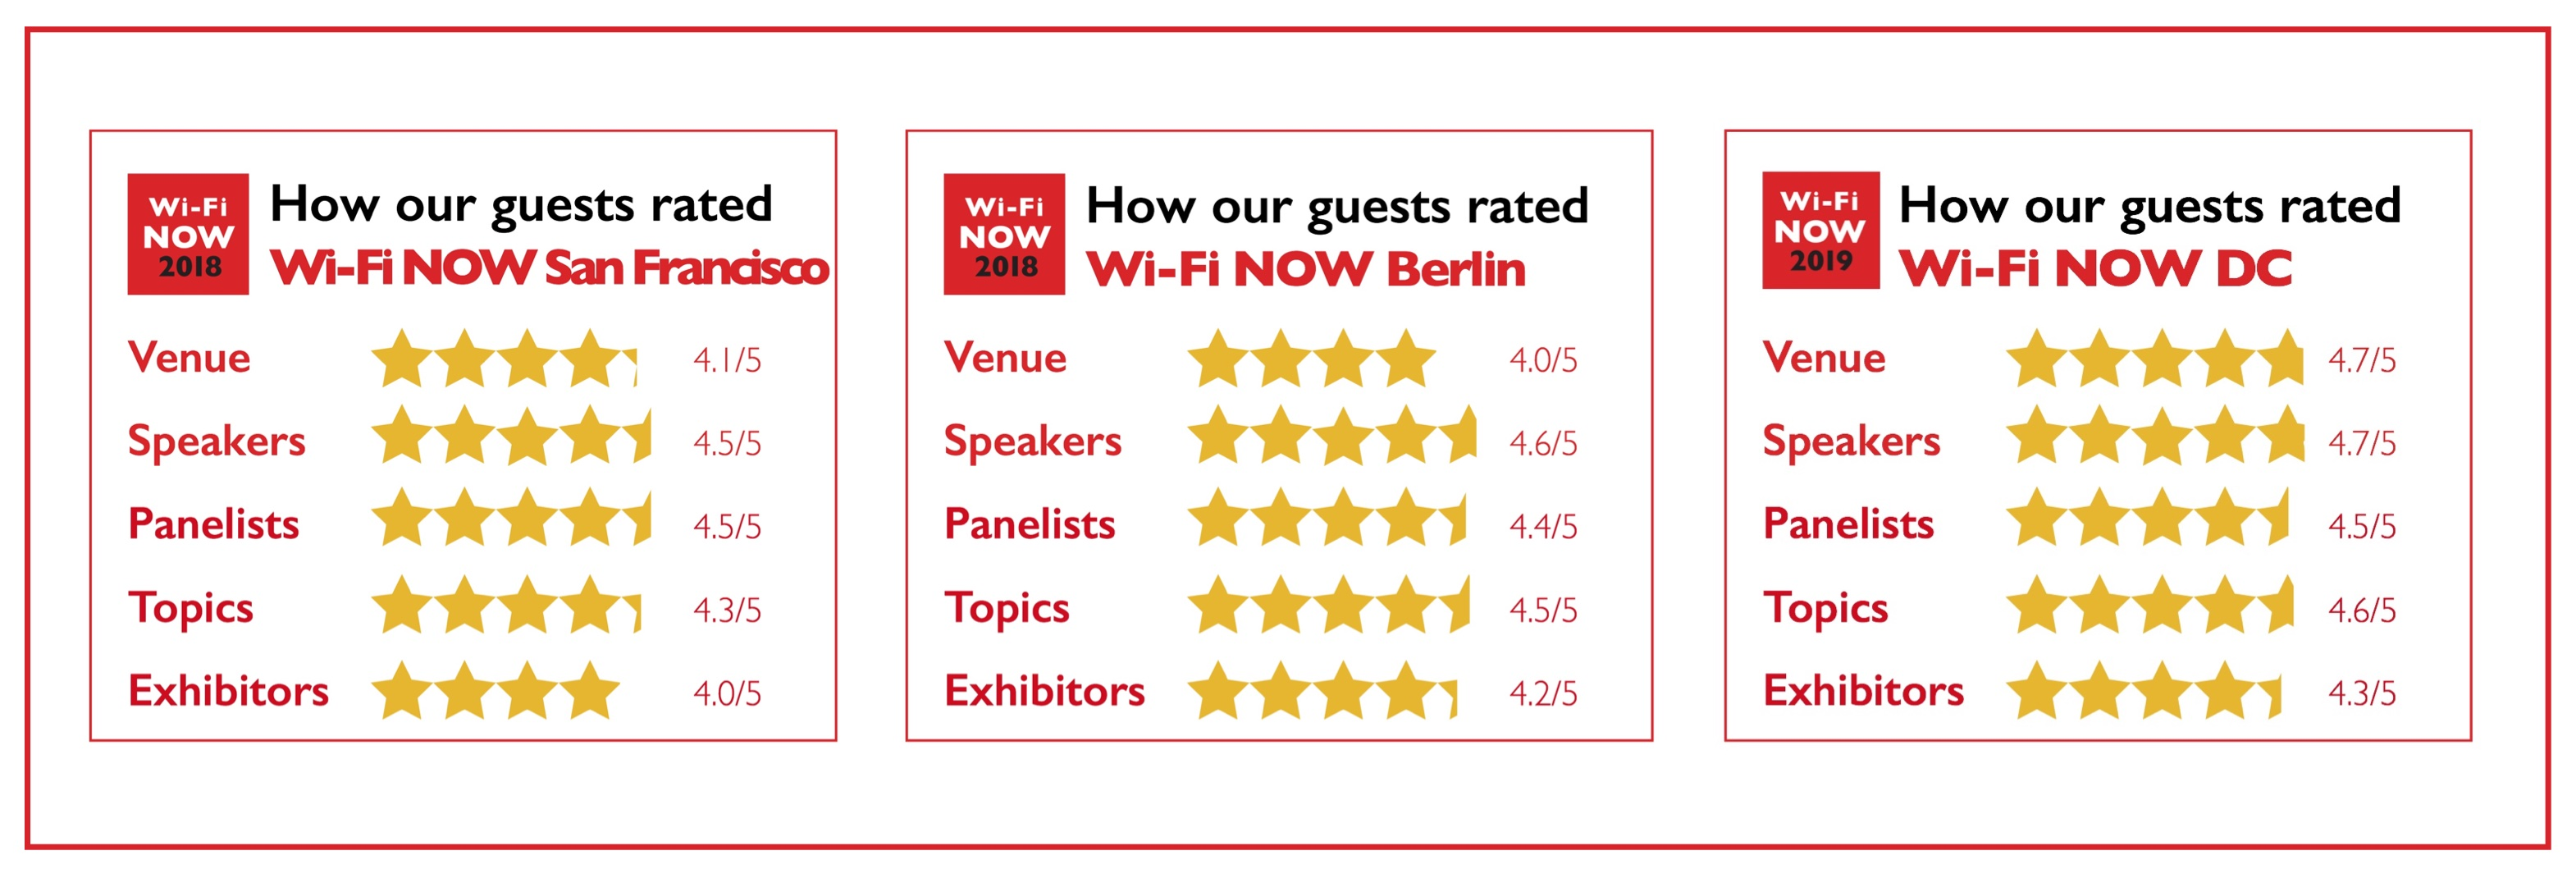 Current Events | Wi-Fi NOW Events